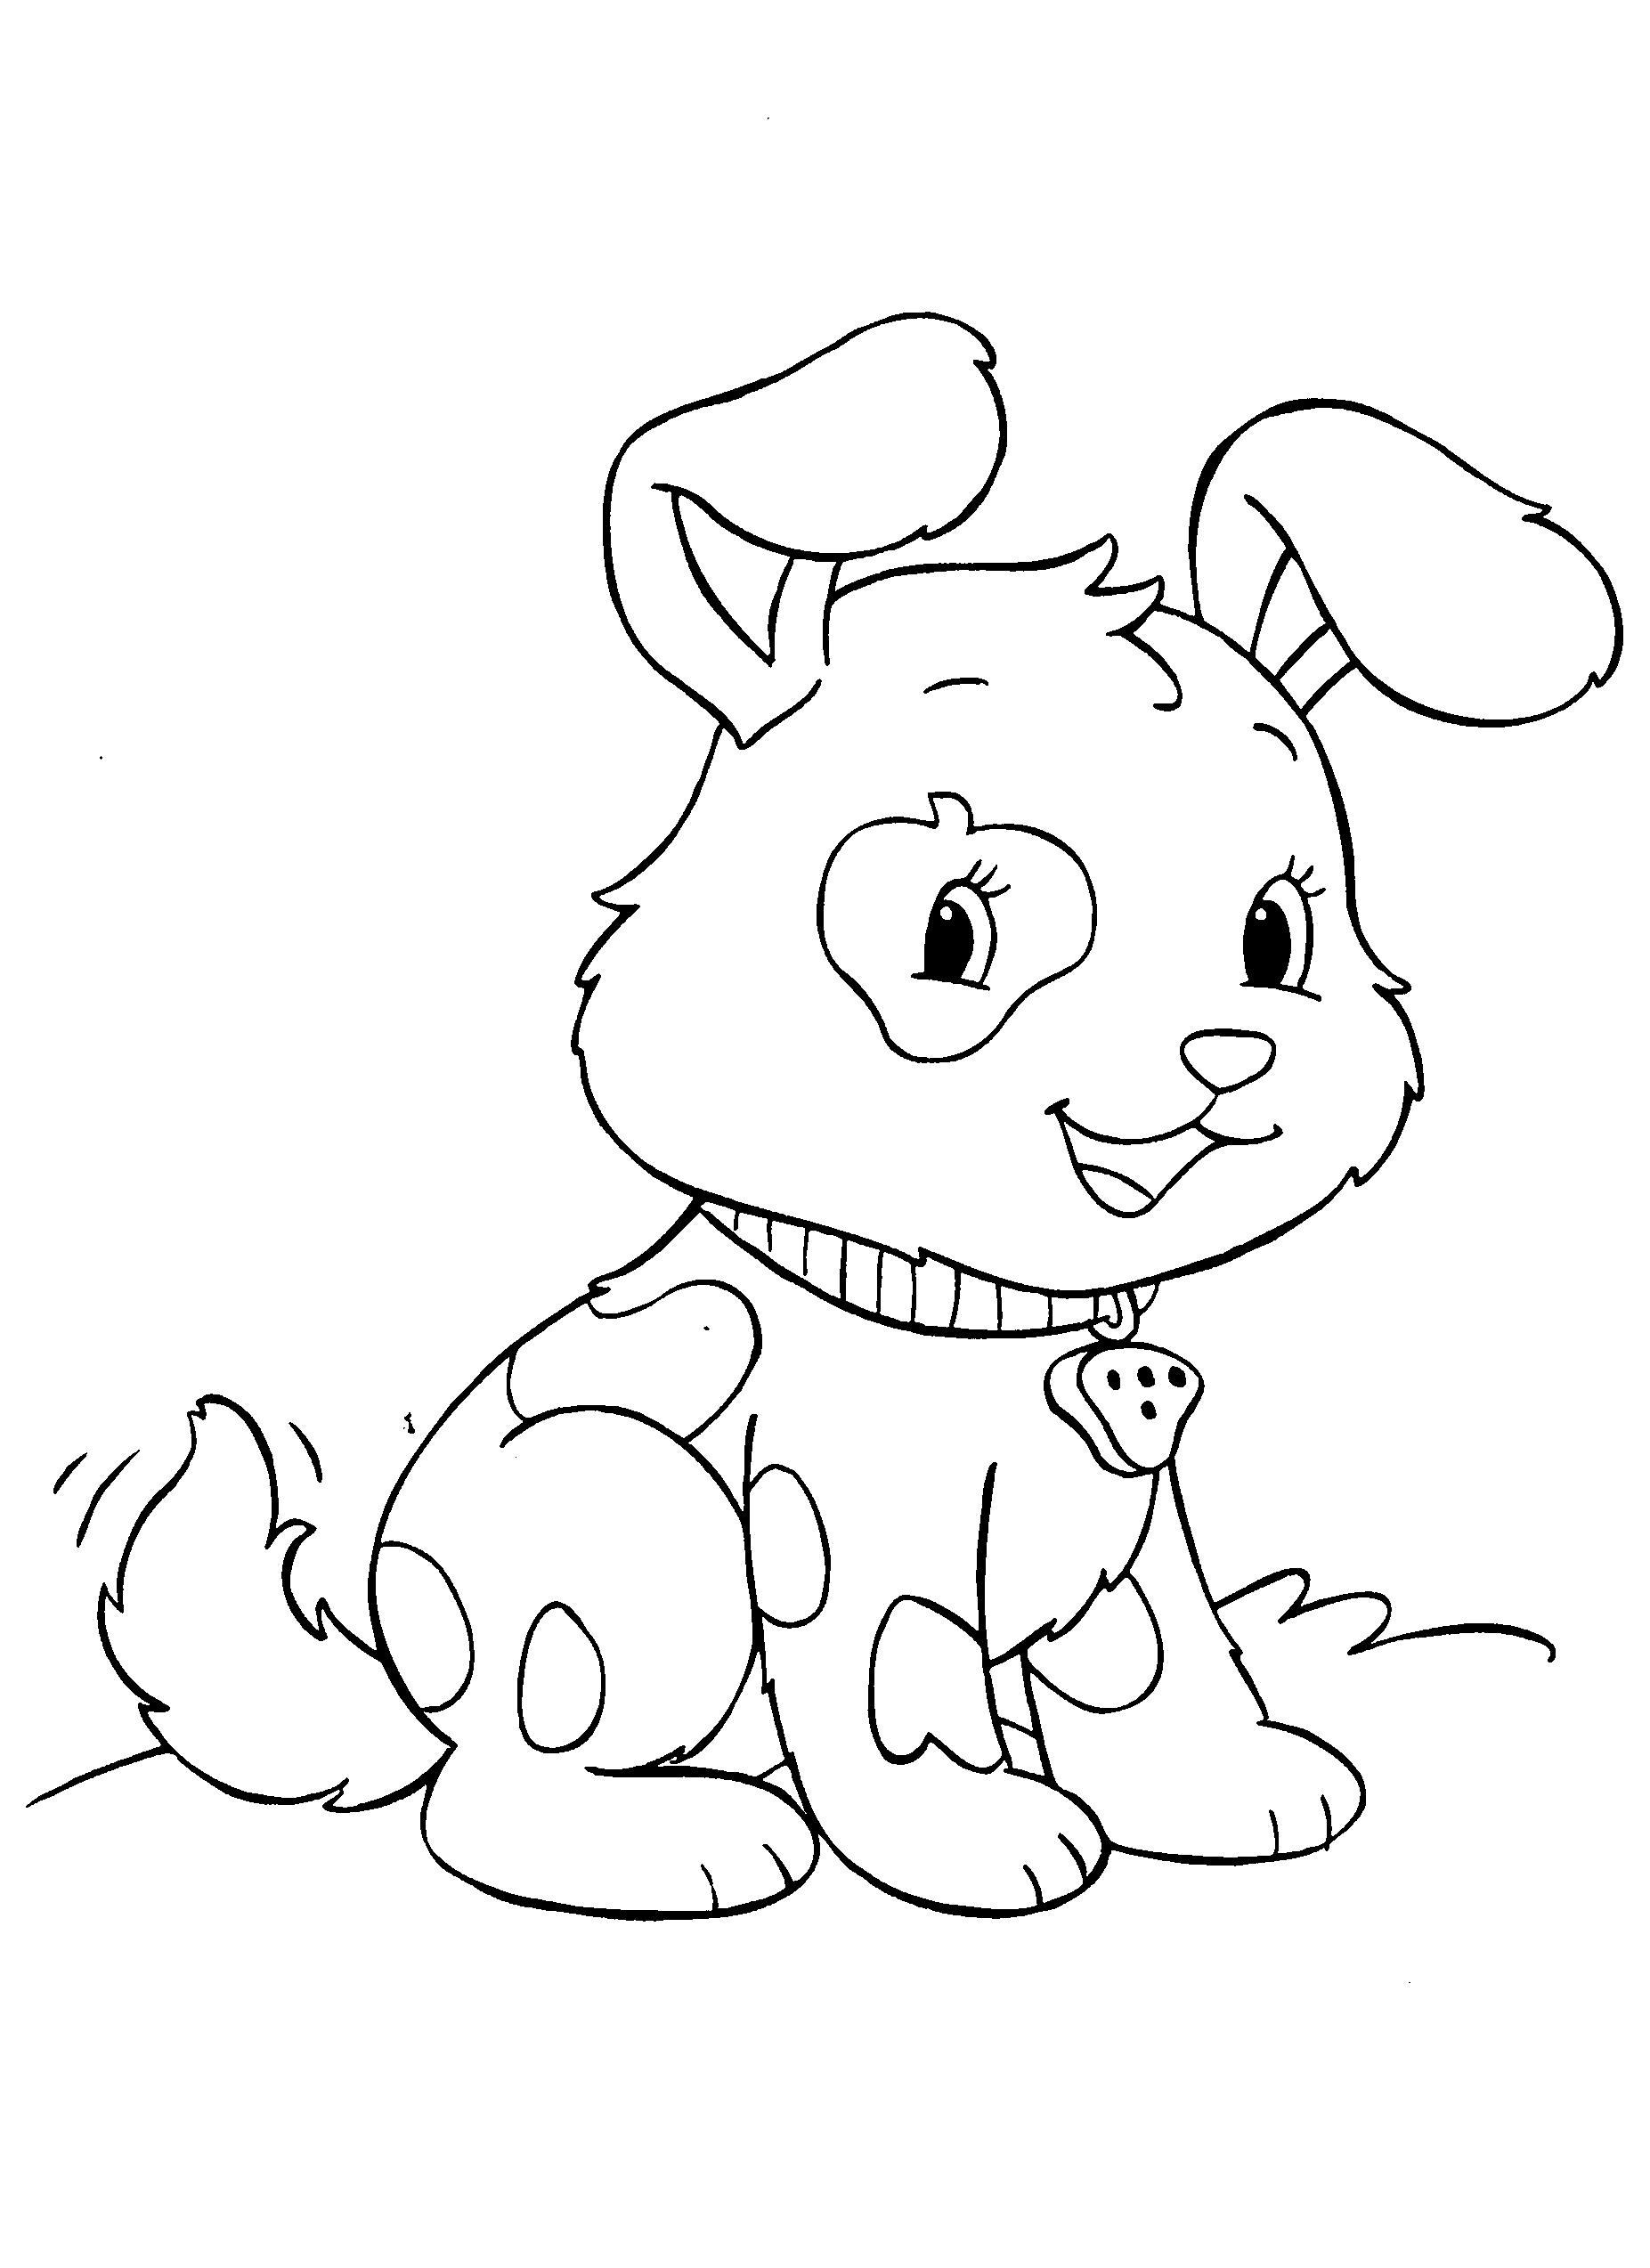 Puppy coloring pages online - Dog Puppies Love Coloring Pages Ok Pictures Coloring Page Of A